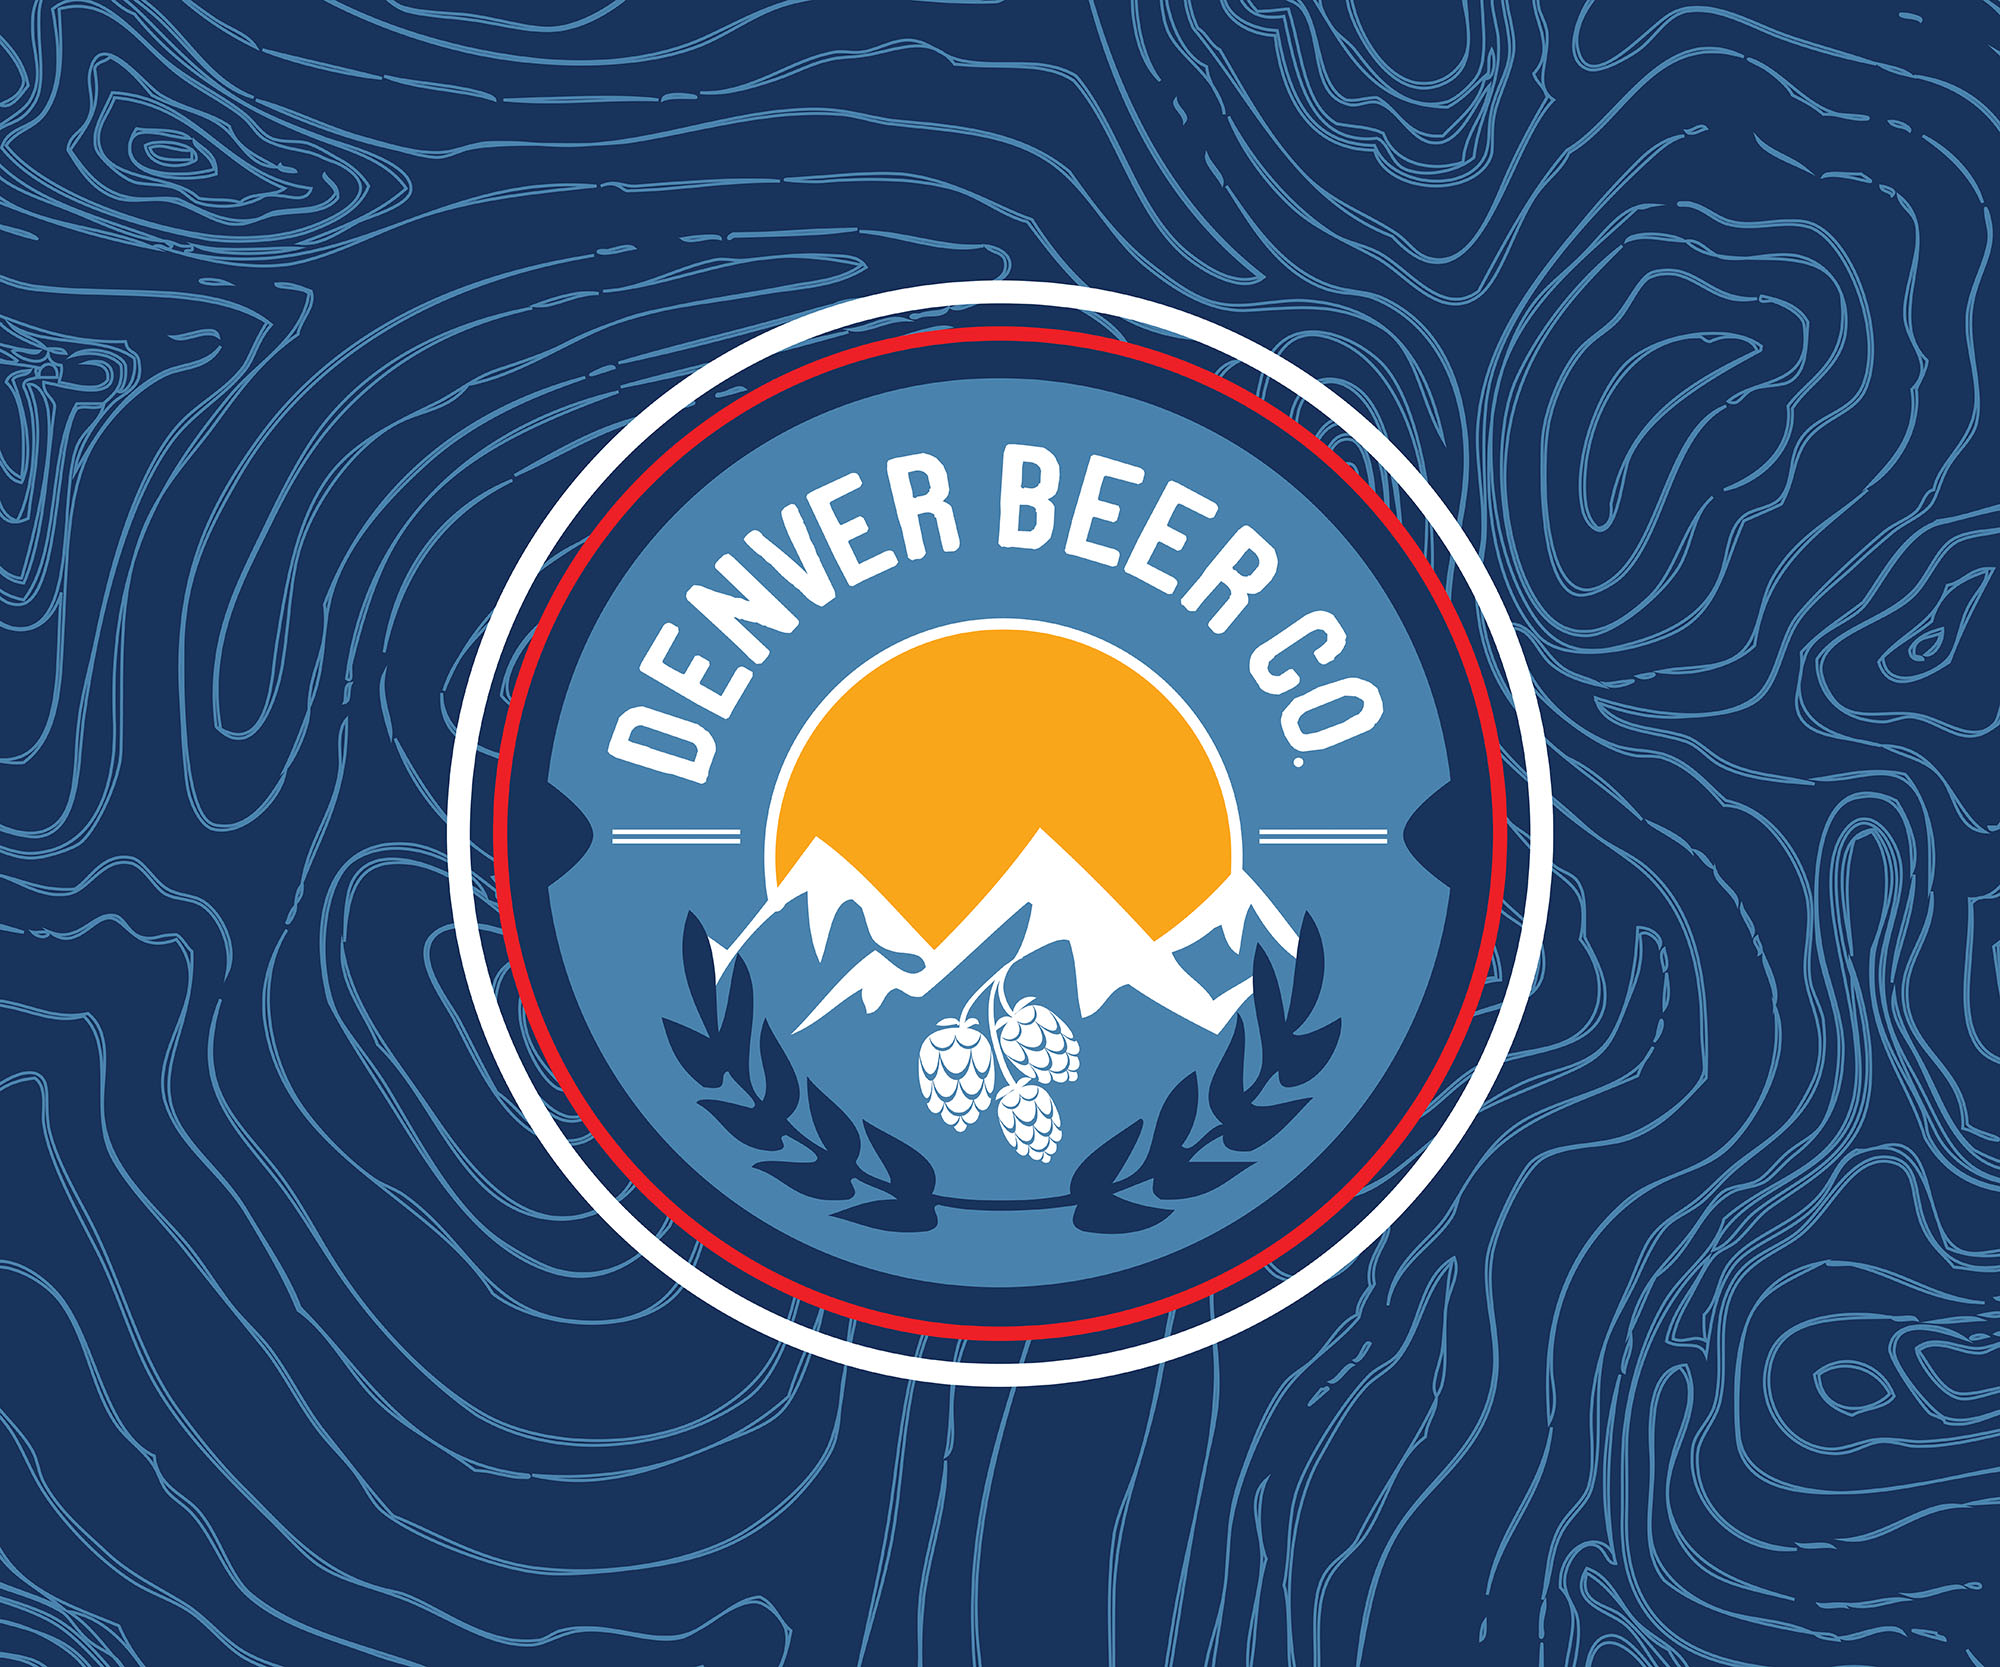 Denver Beer Co Fleece Blanket MAIN